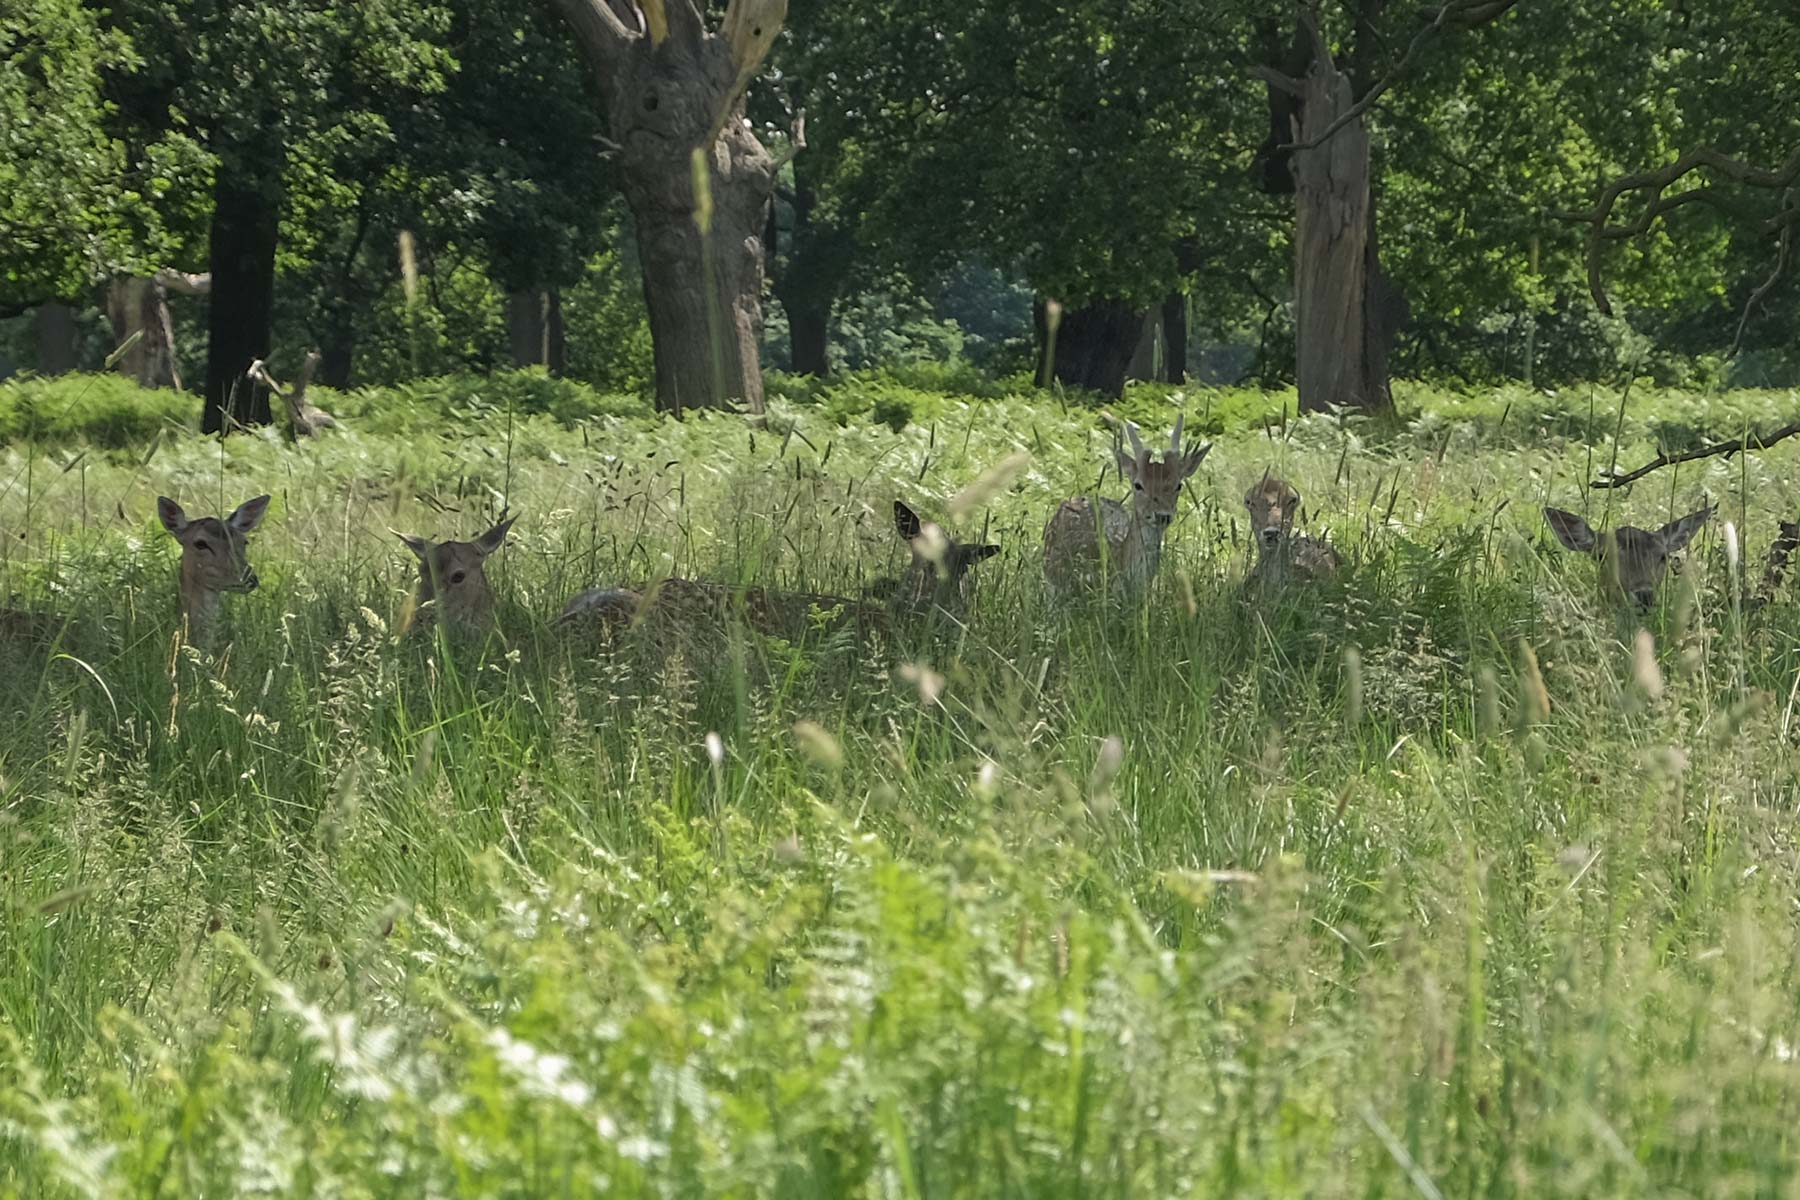 Hirsche im Schatten im Richmond Park in London